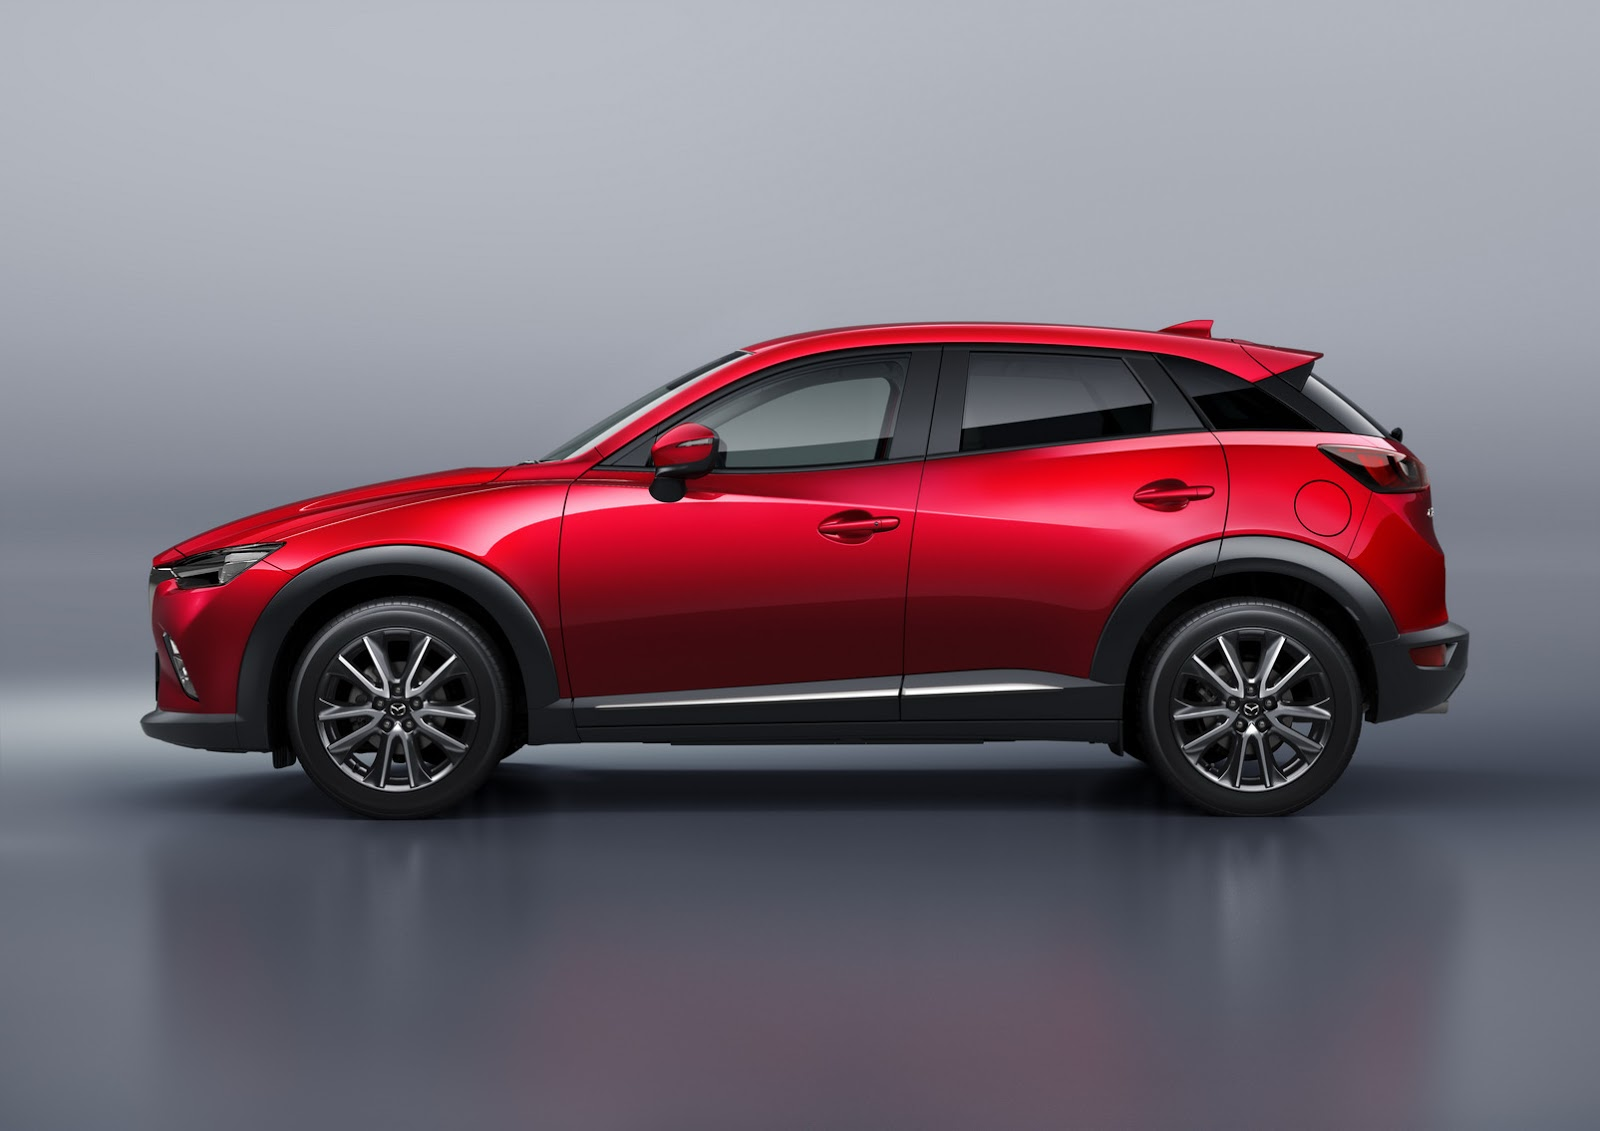 Cx 5 Diesel Release Date >> 2016 Mazda CX-3 is a Crispy Looking Small CUV [50 Photos ...